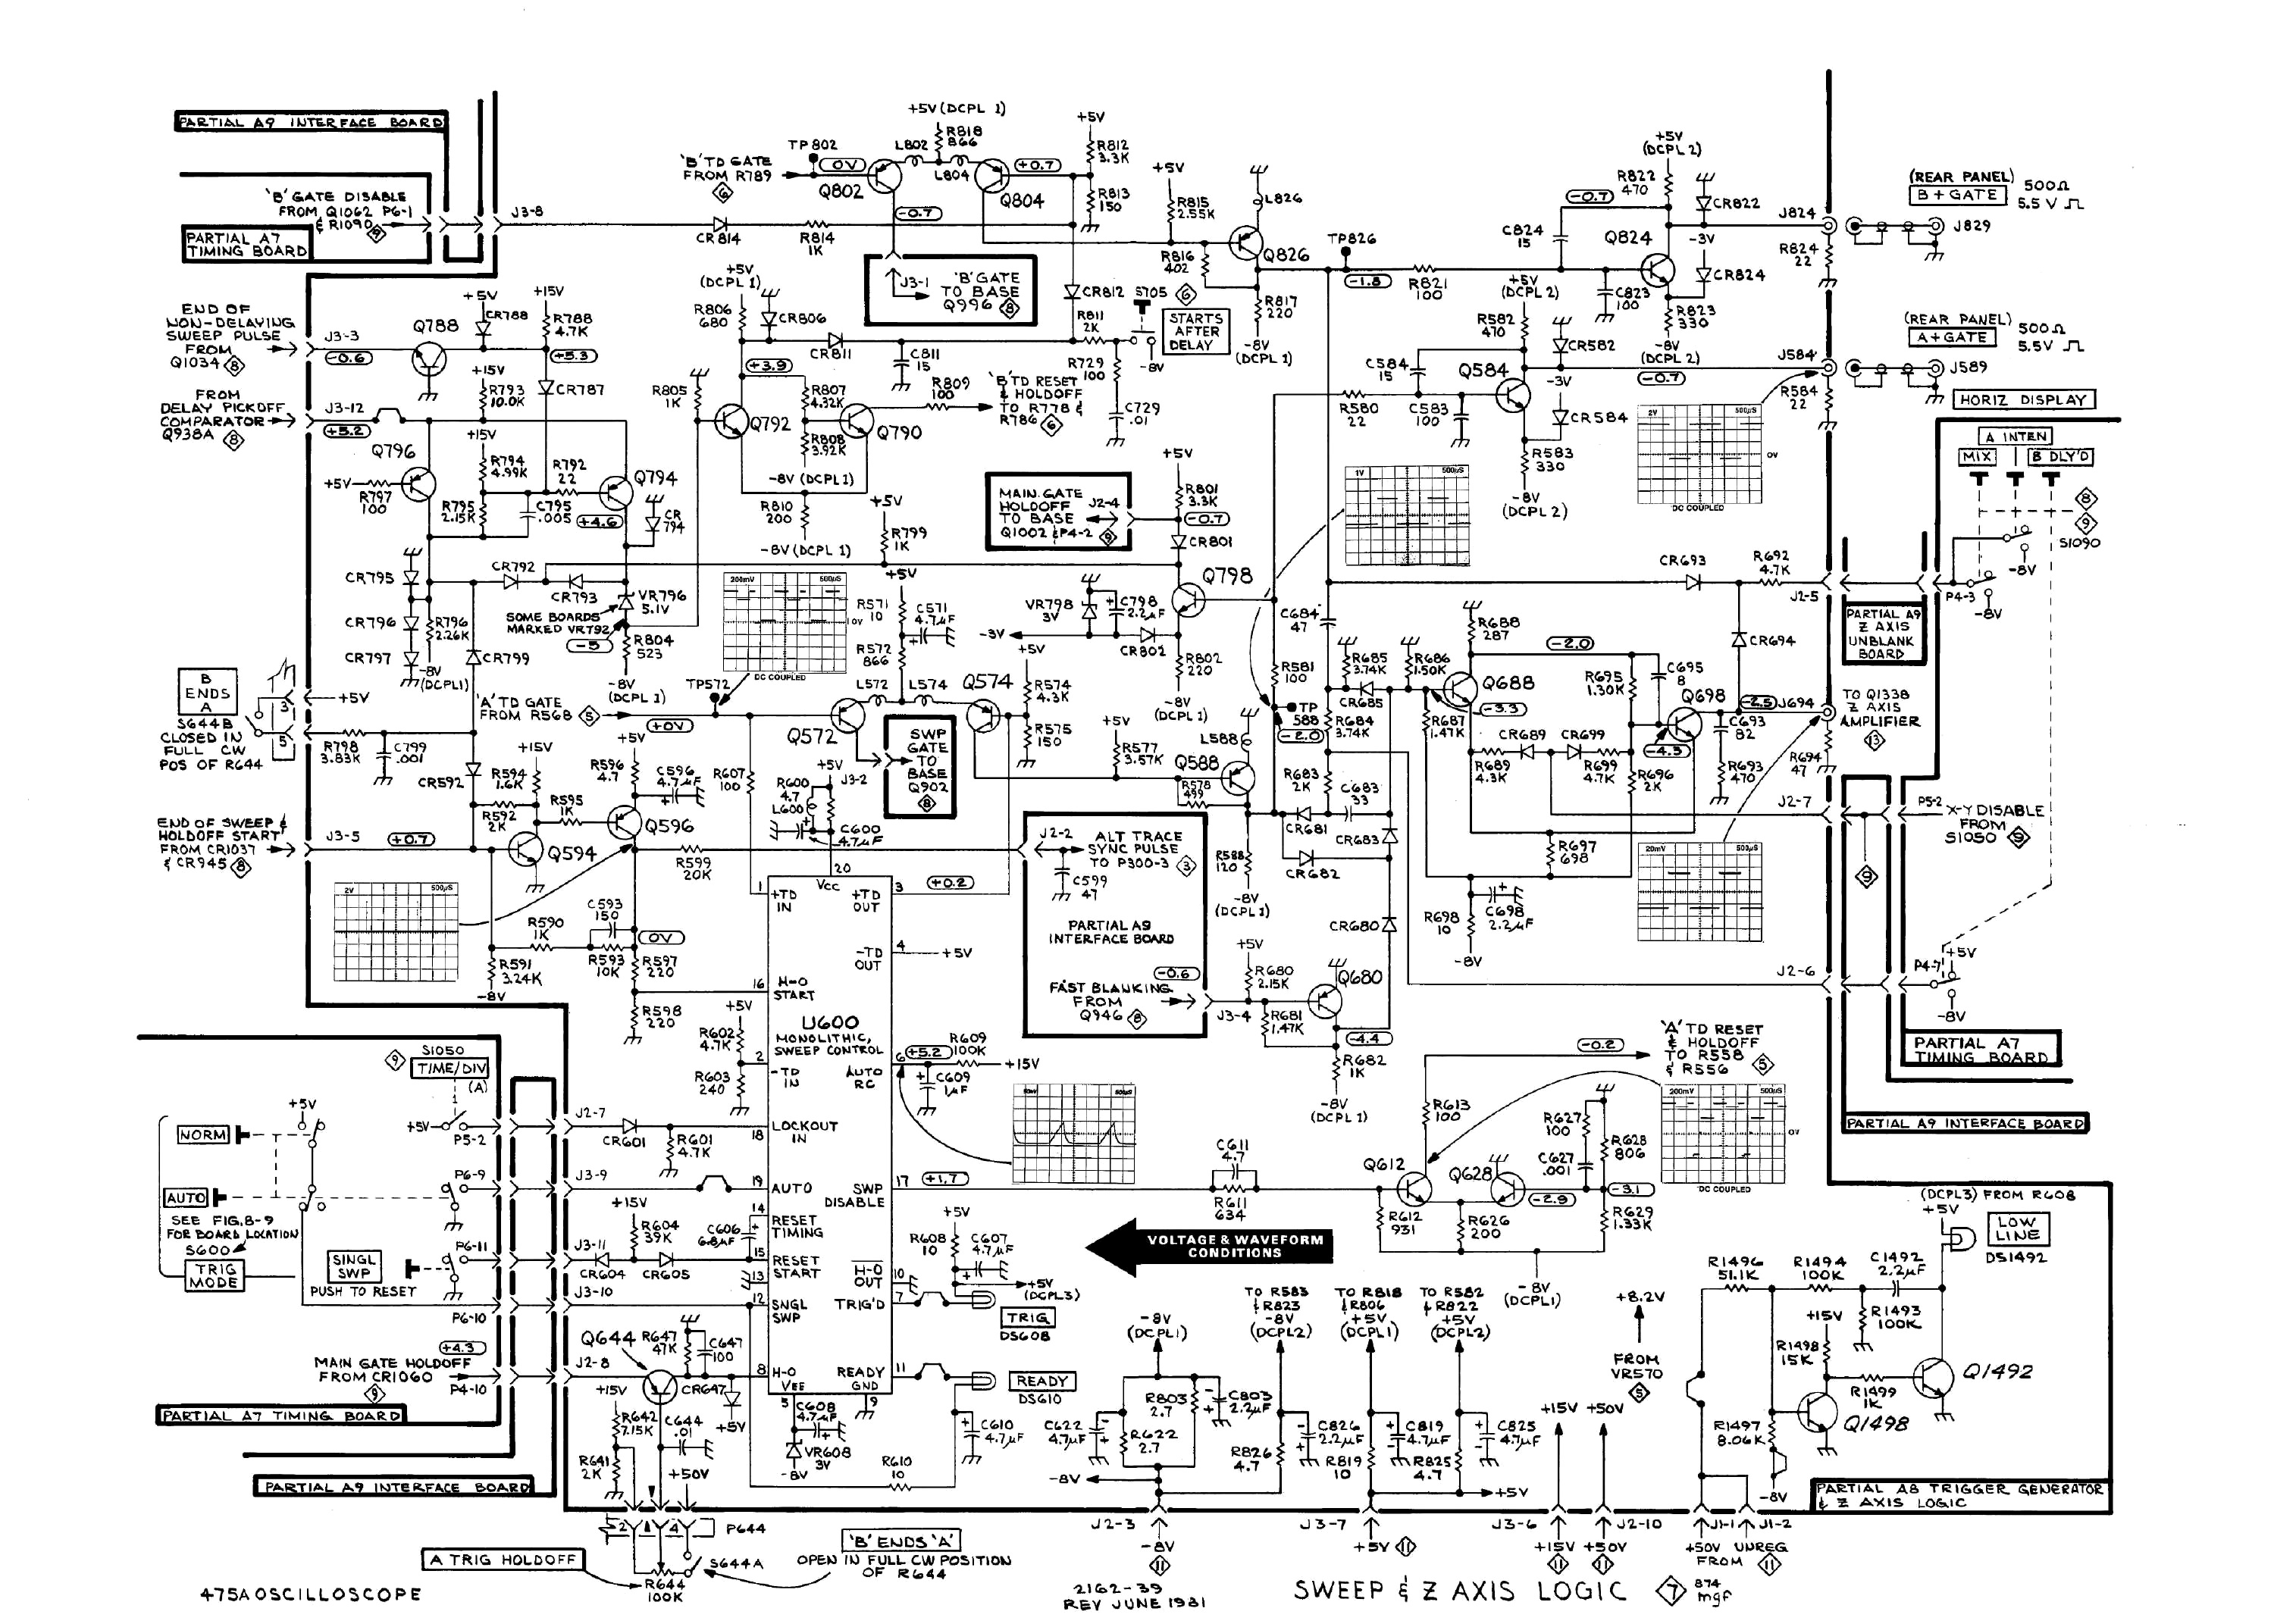 Terrific Electric Circuit Drawing At Getdrawings Com Free For Personal Use Wiring Cloud Ymoonsalvmohammedshrineorg